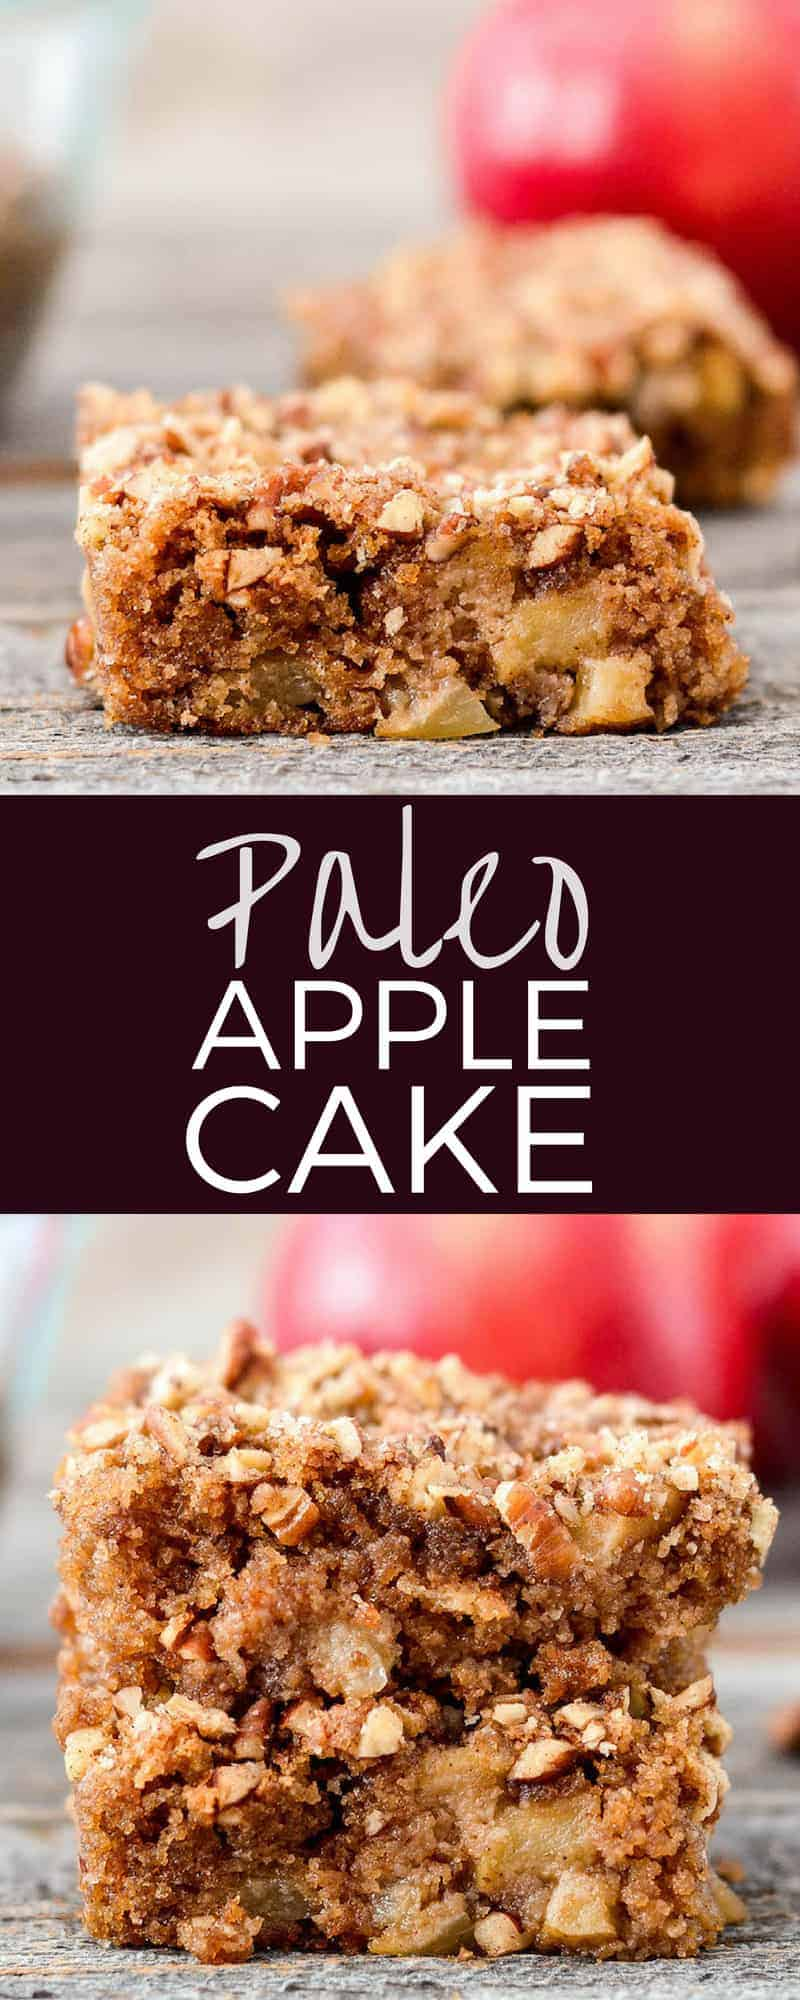 Paleo Apple Cake is THE best apple cake recipe ever! An easy, healthy dessert that's full of all the best fall flavors! Plus it's Paleo, gluten-free, dairy-free, and refined sugar free! #applecake #cake #healthy #recipe #paleo #glutenfree #apples #dairyfree #refinedsugar free #grainfree